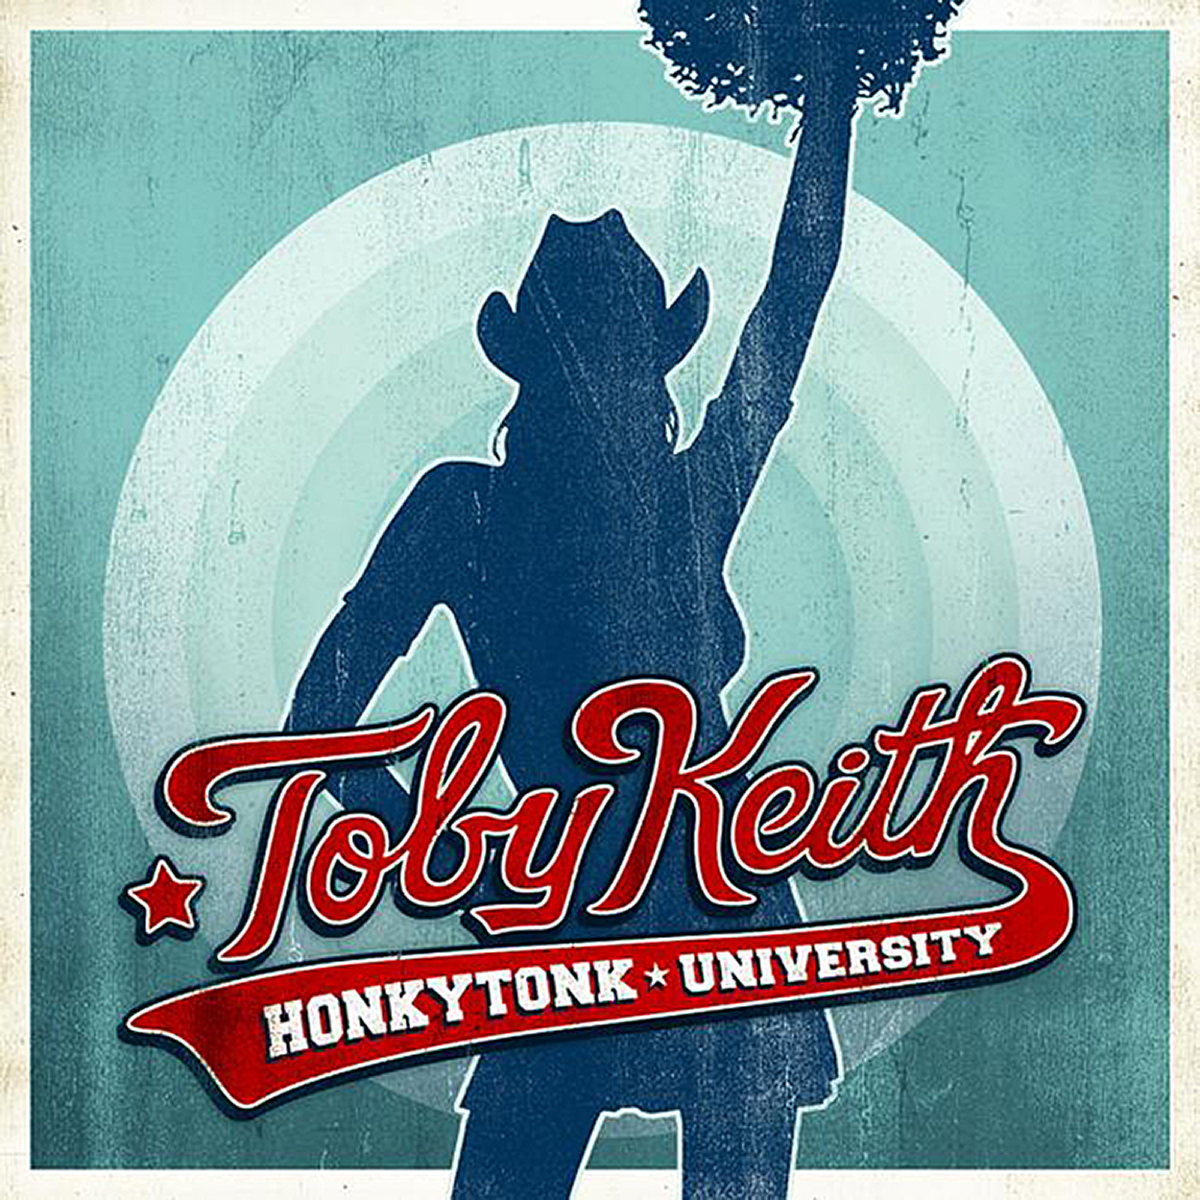 Toby Keith, Honkytonk University